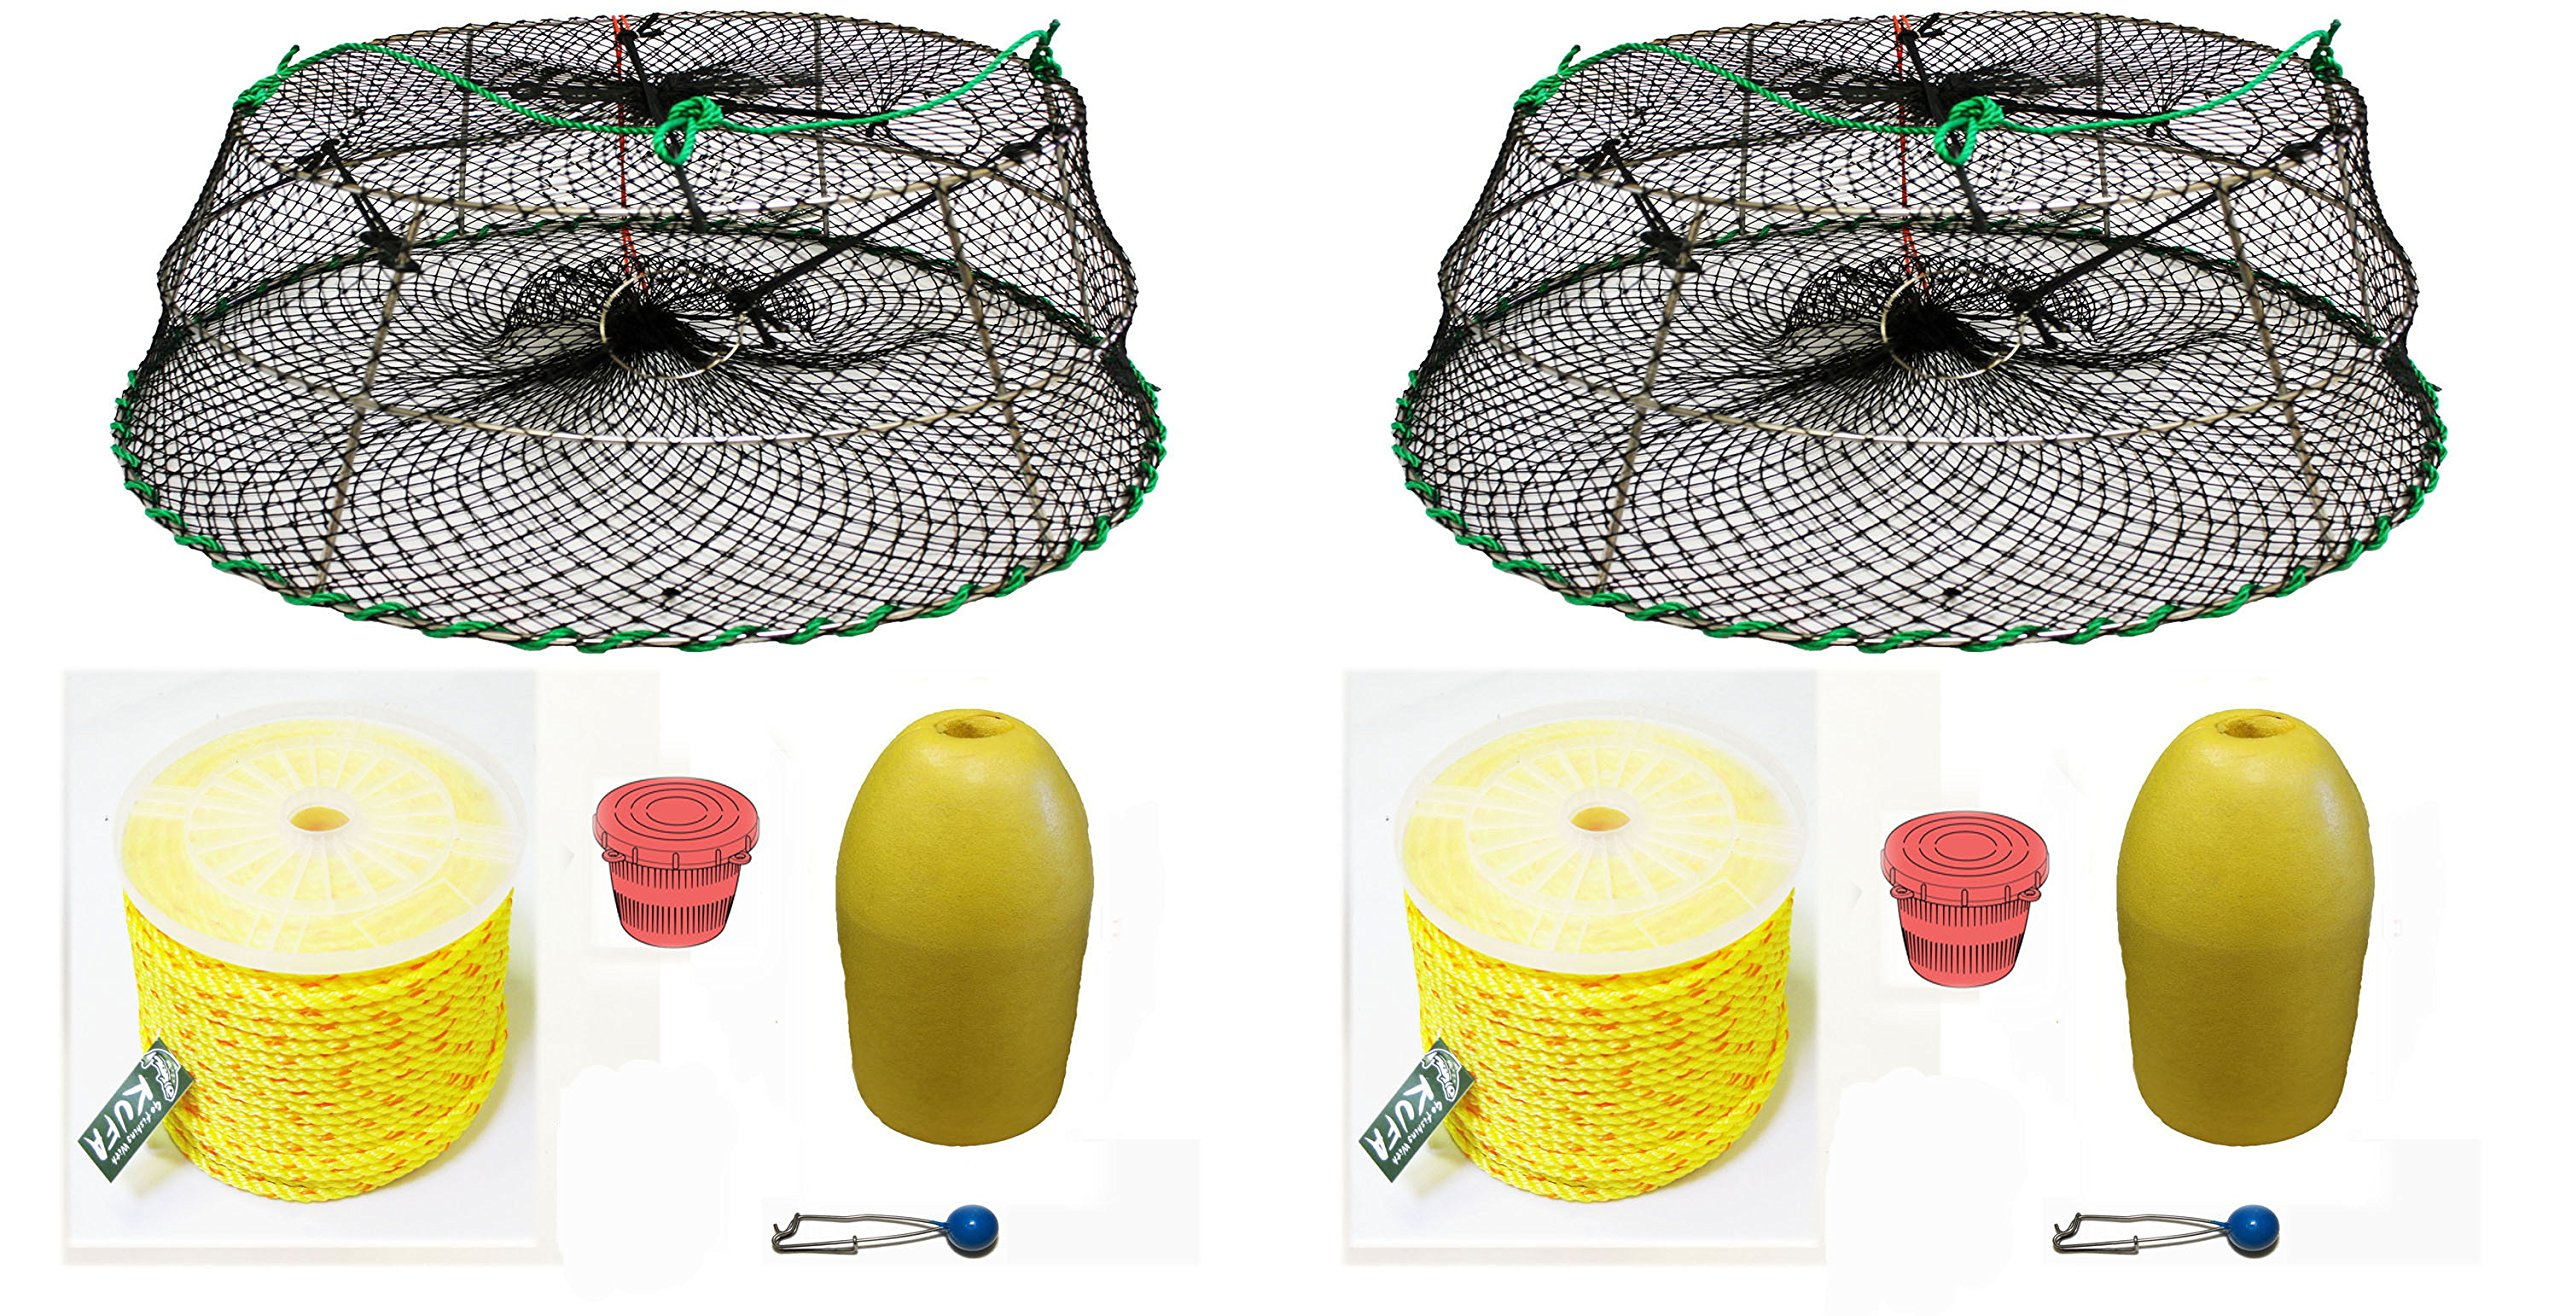 2-Pack of KUFA Sports Tower Style Prawn trap with 400' rope, Yellow float and Vented Bait Jar combo (CT77+PAP1)X2 by KUFA Sports